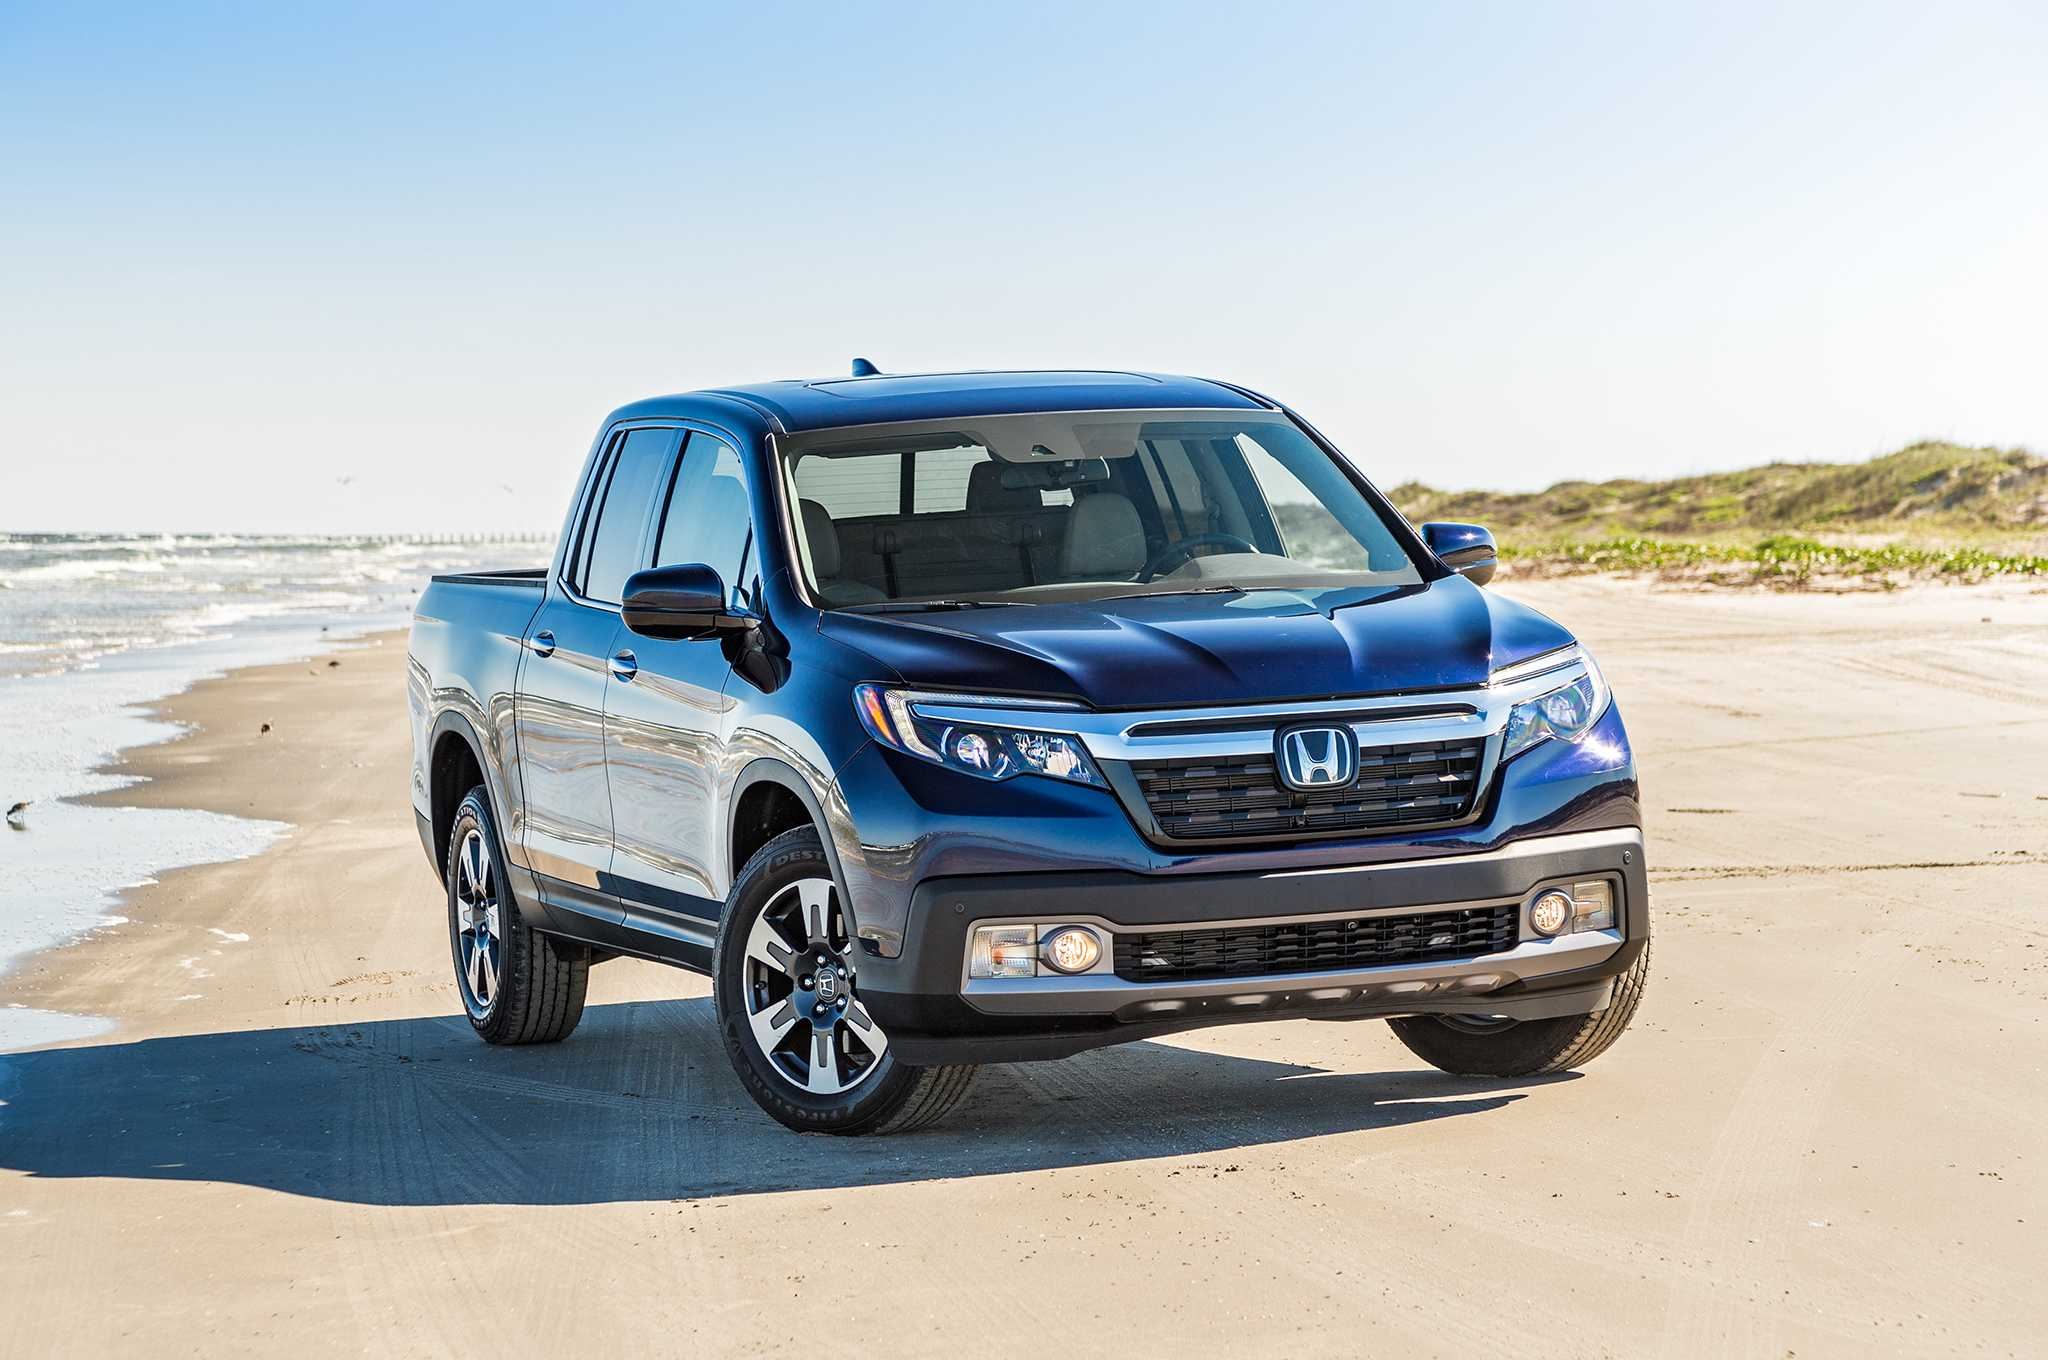 2017 Honda Ridgeline Is Coming, Priced at $30,475